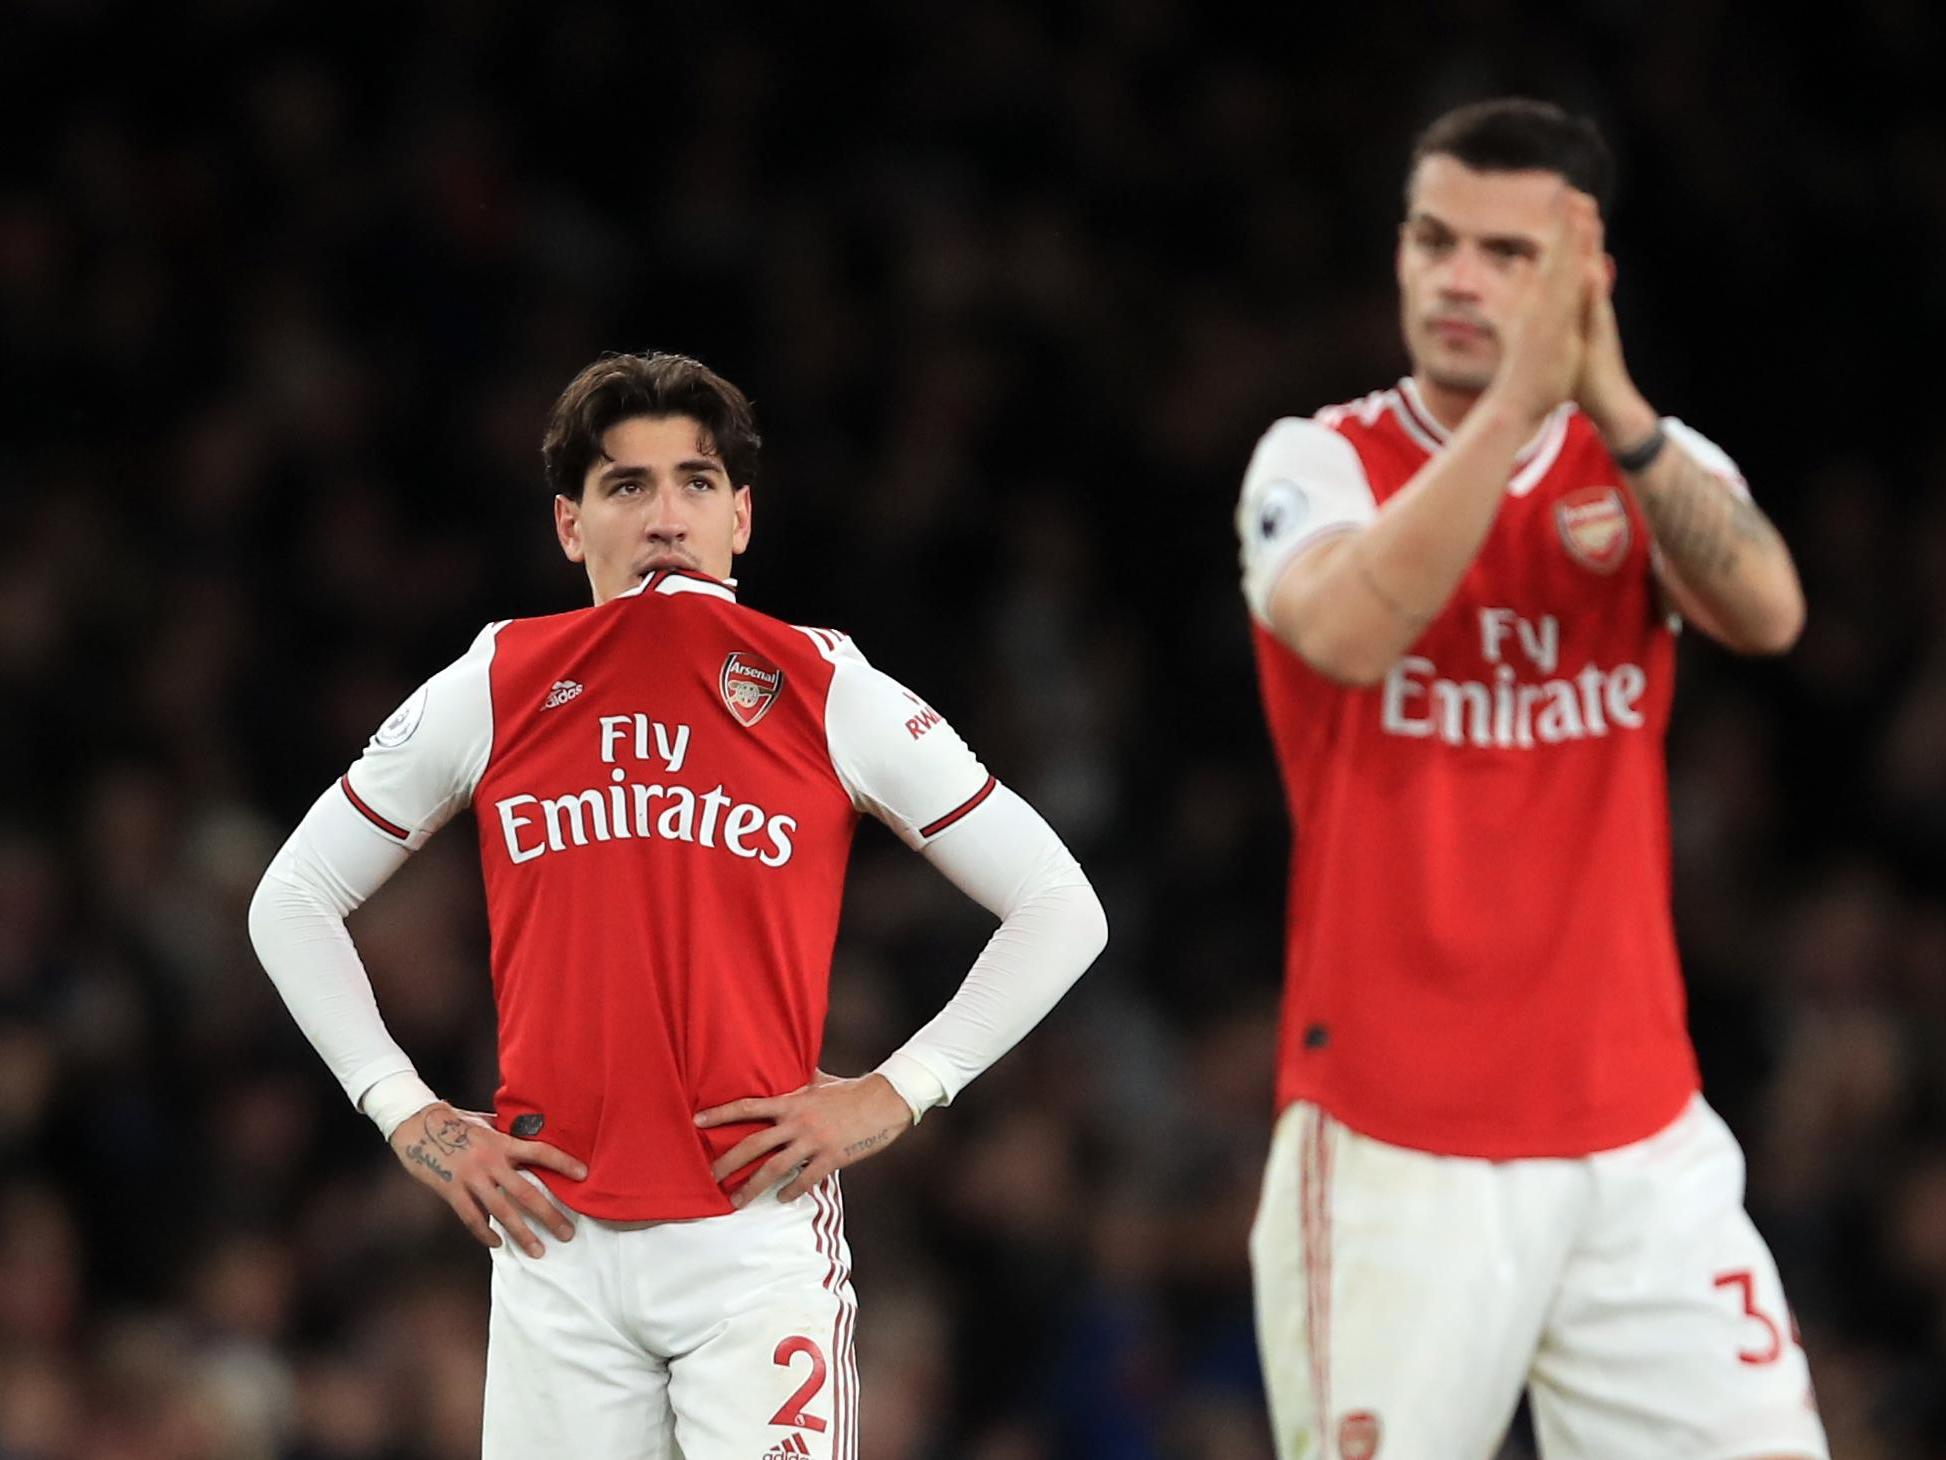 Hector Bellerin 'lost for words' after latest Arsenal defeat adds to worst run in 42 years